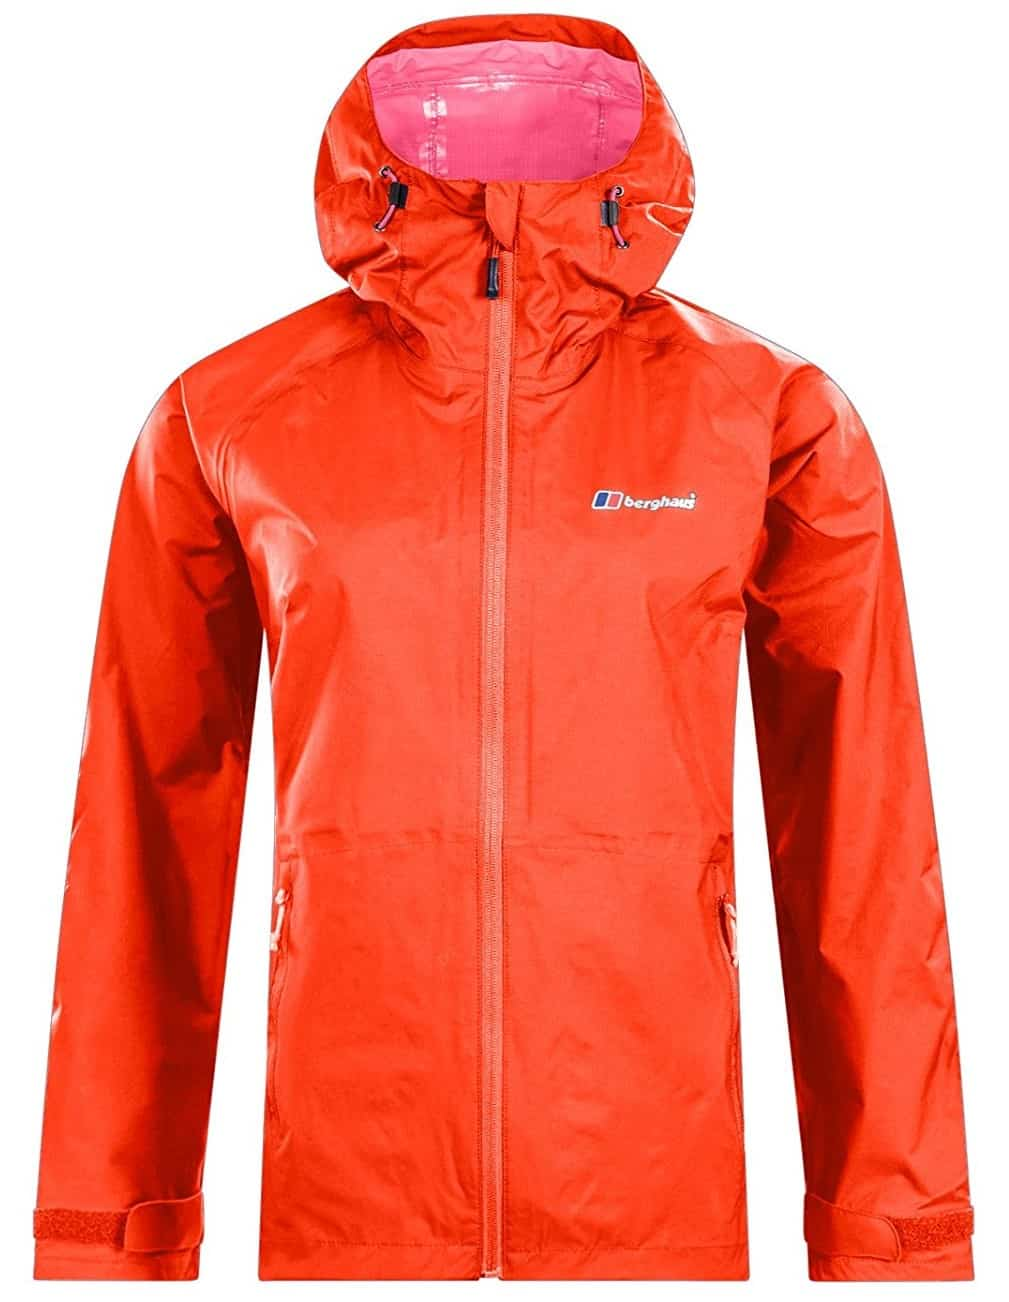 Womens Waterproof Cycling Jacket – Berghaus